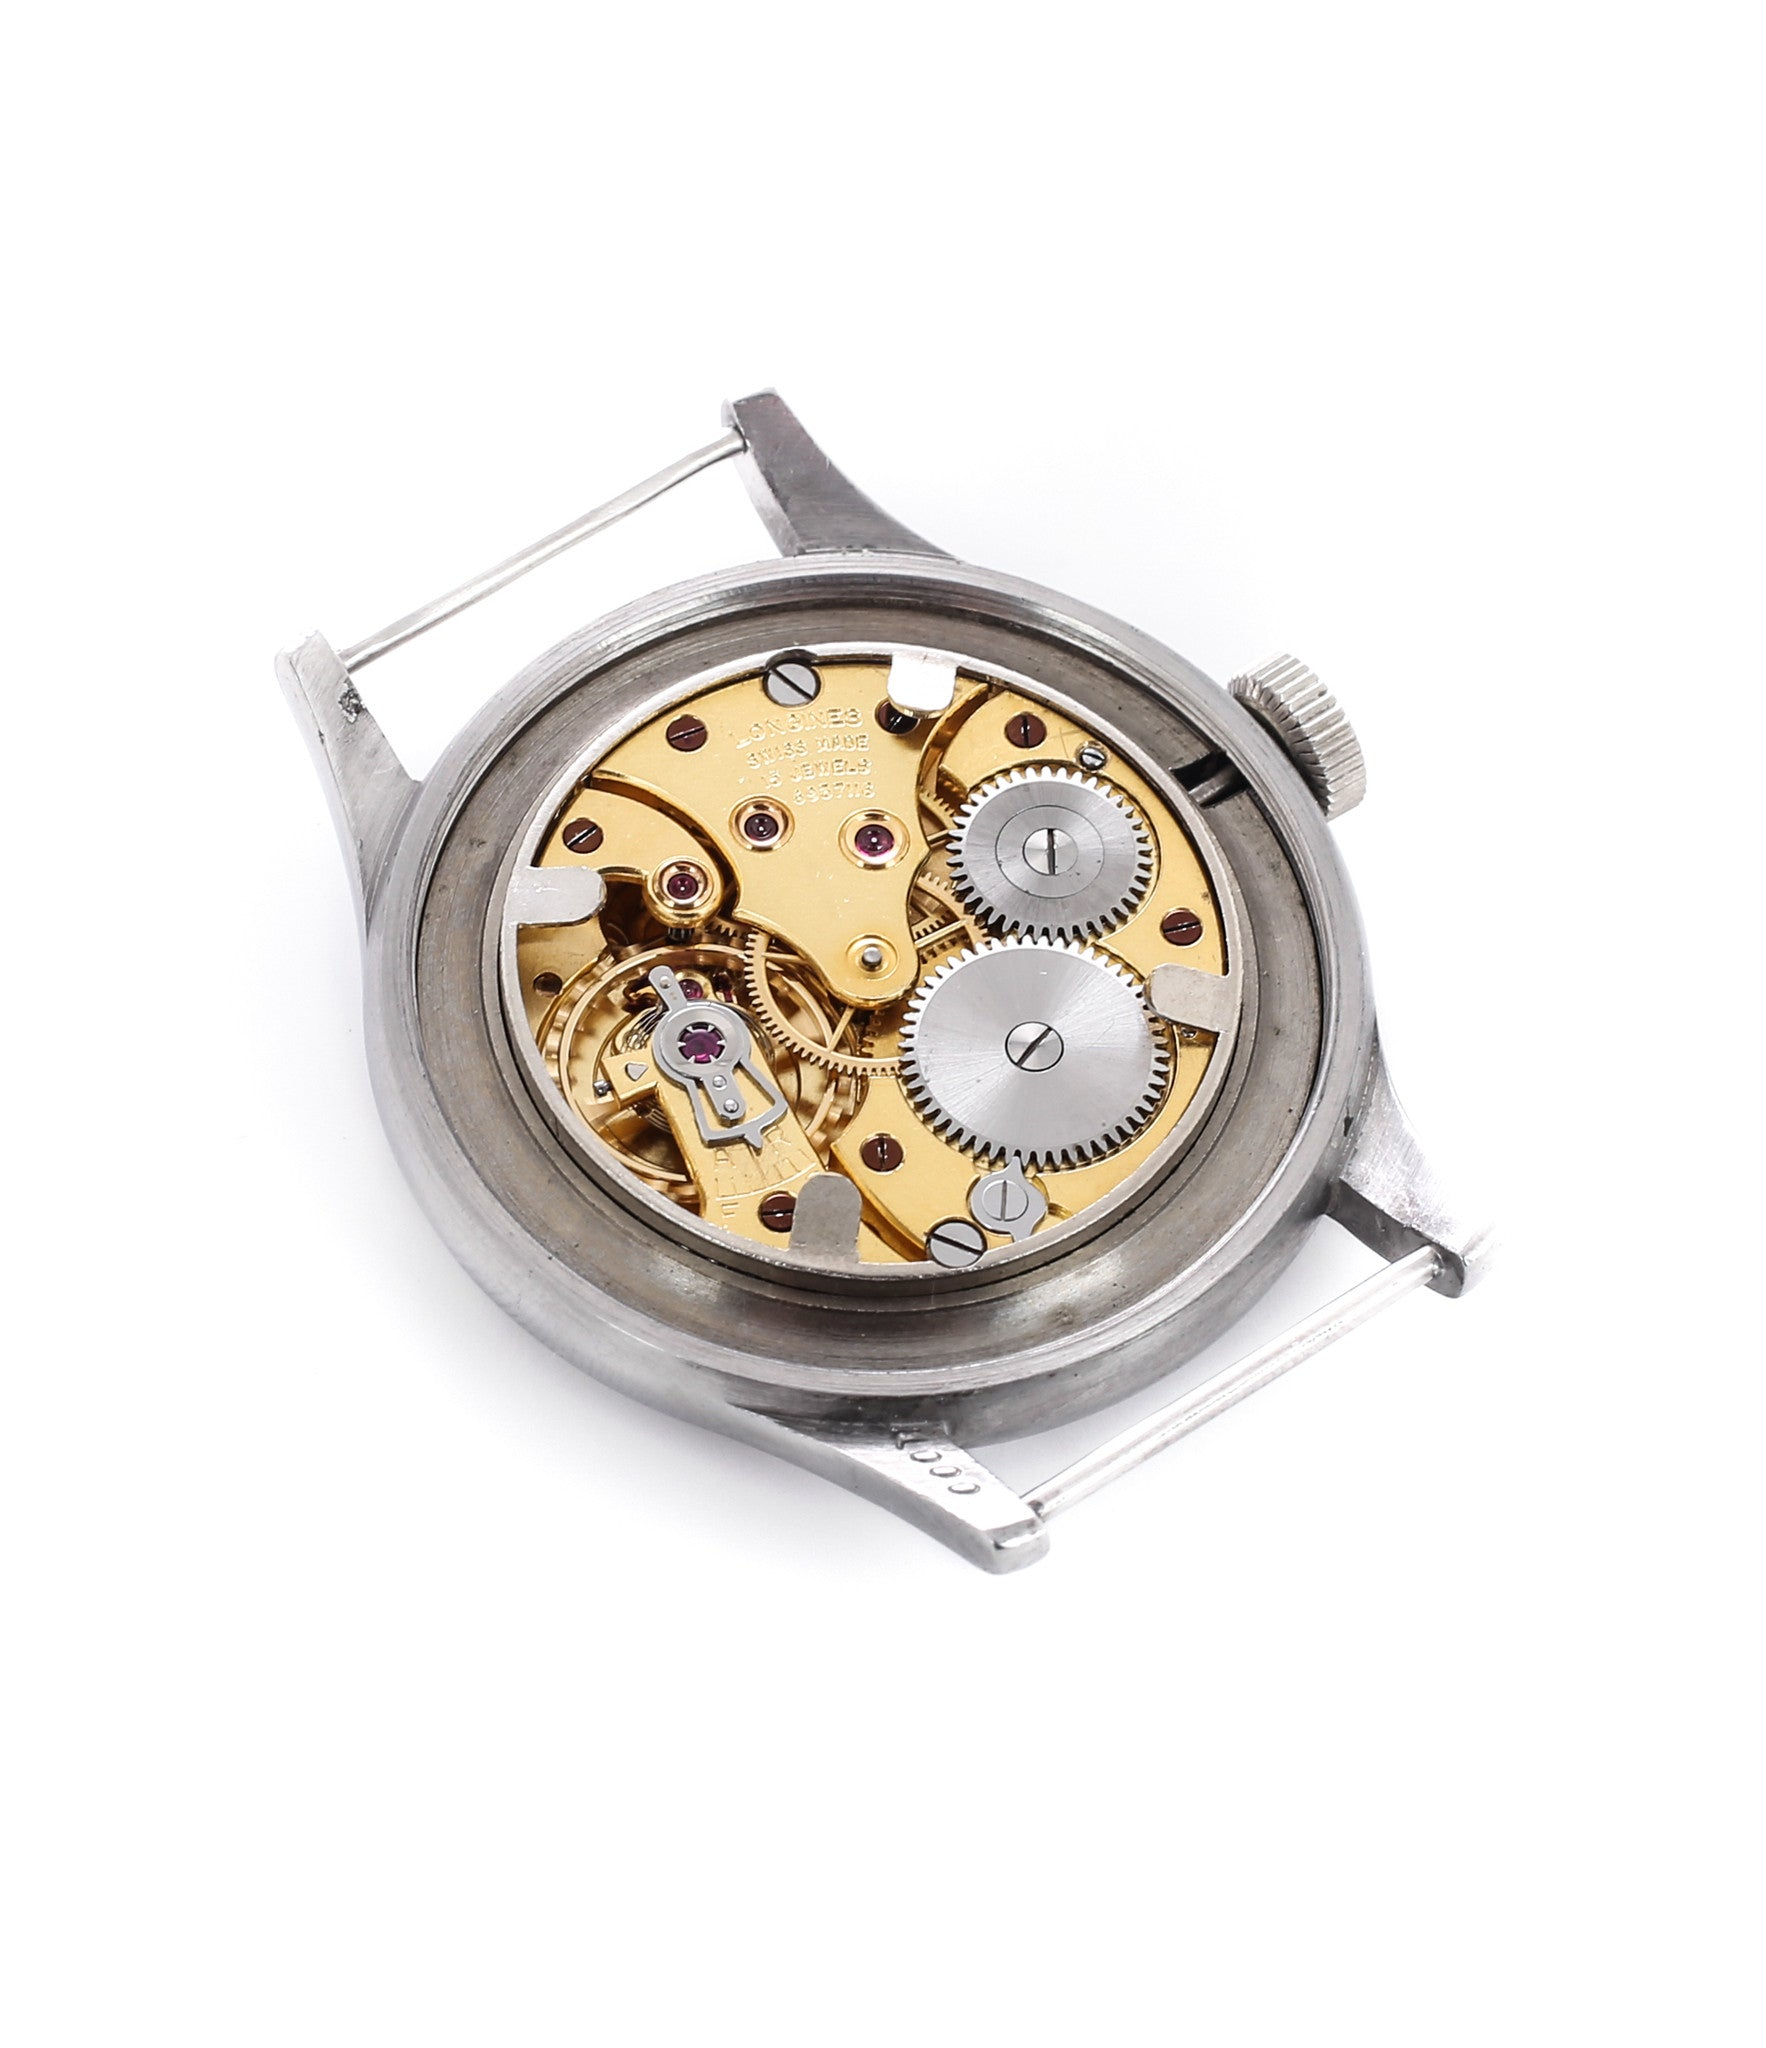 manual-winding Longgines movement inbuy vintage Longines W.W.W. Dirty Dozen British MoD-issued military watch F 4724 steel chronometer-graded watch for sale online WATCH XCHANGE London with authenticity guaranteed